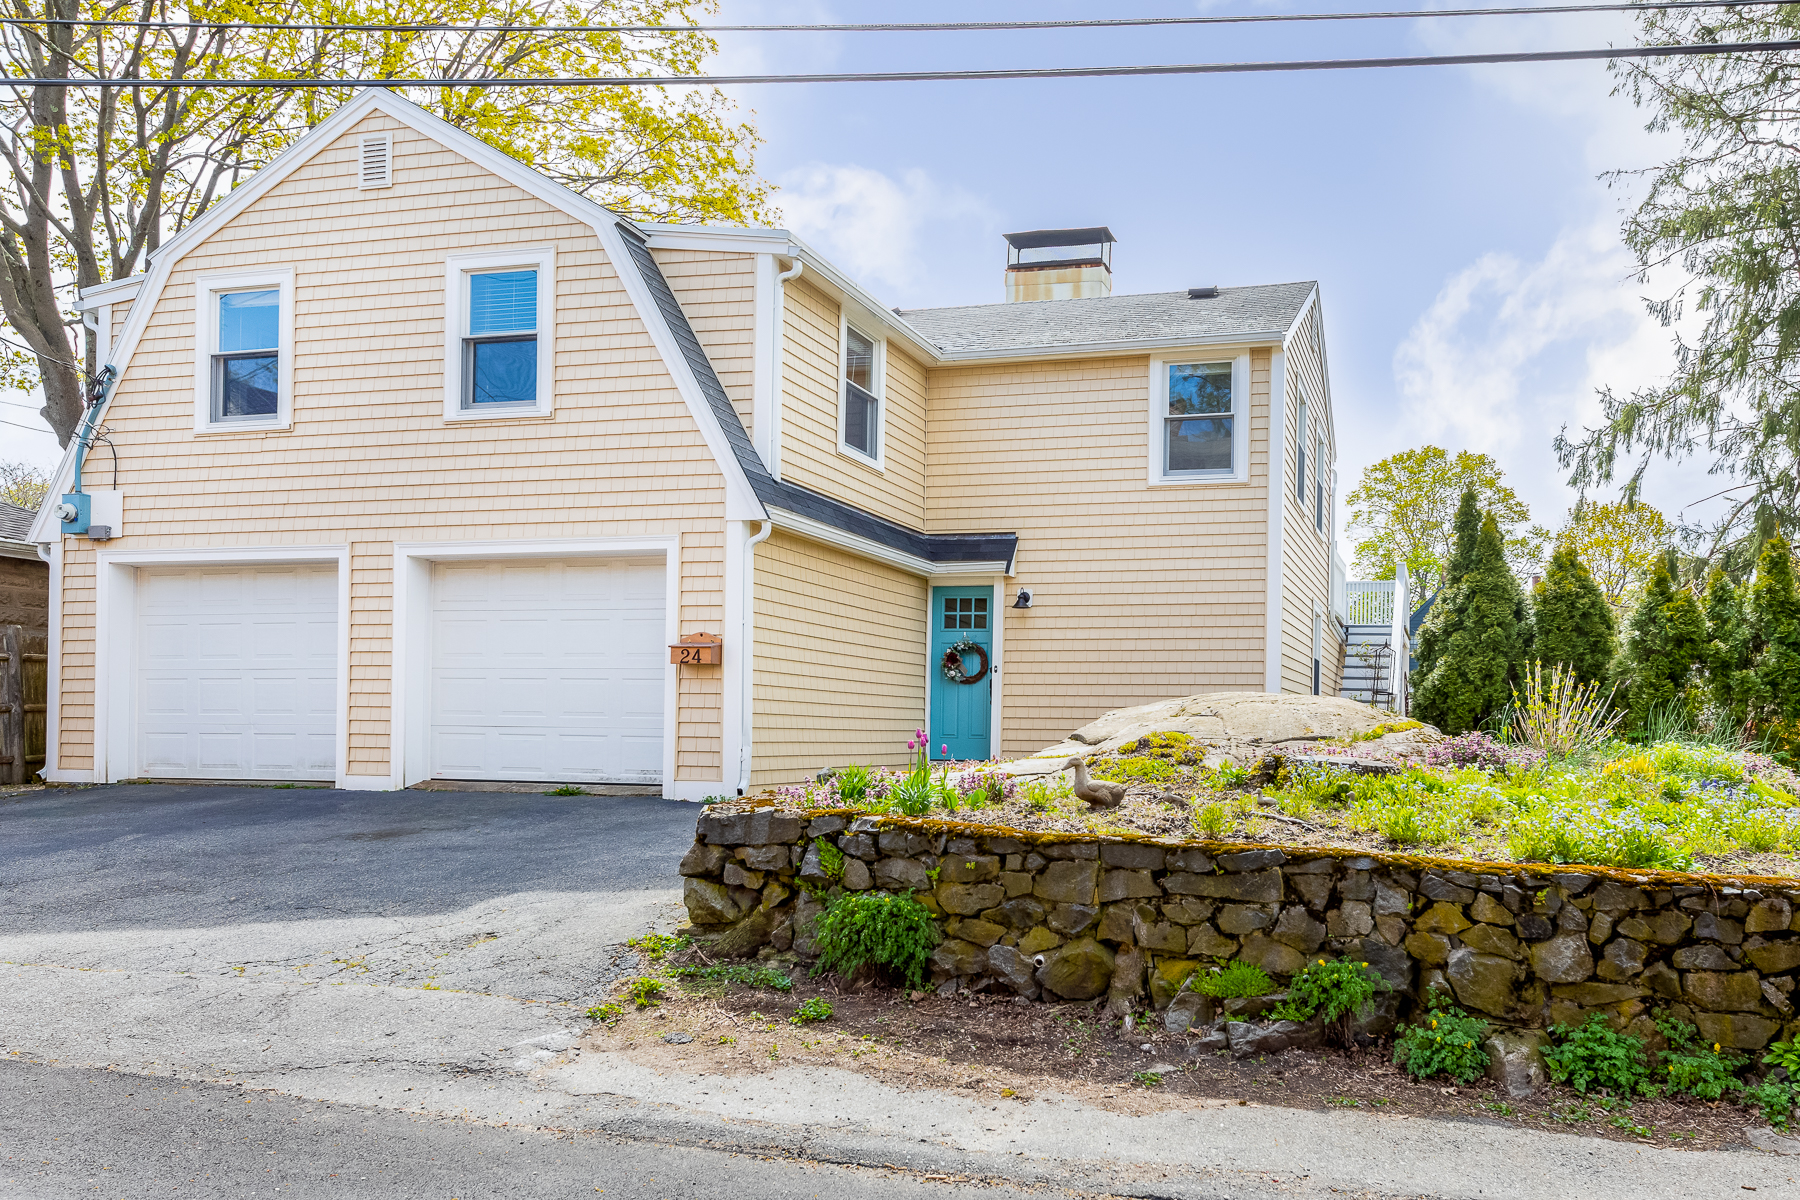 Single Family Homes for Active at Unique Home 1 block from historic area 24 Russell Street Marblehead, Massachusetts 01945 United States